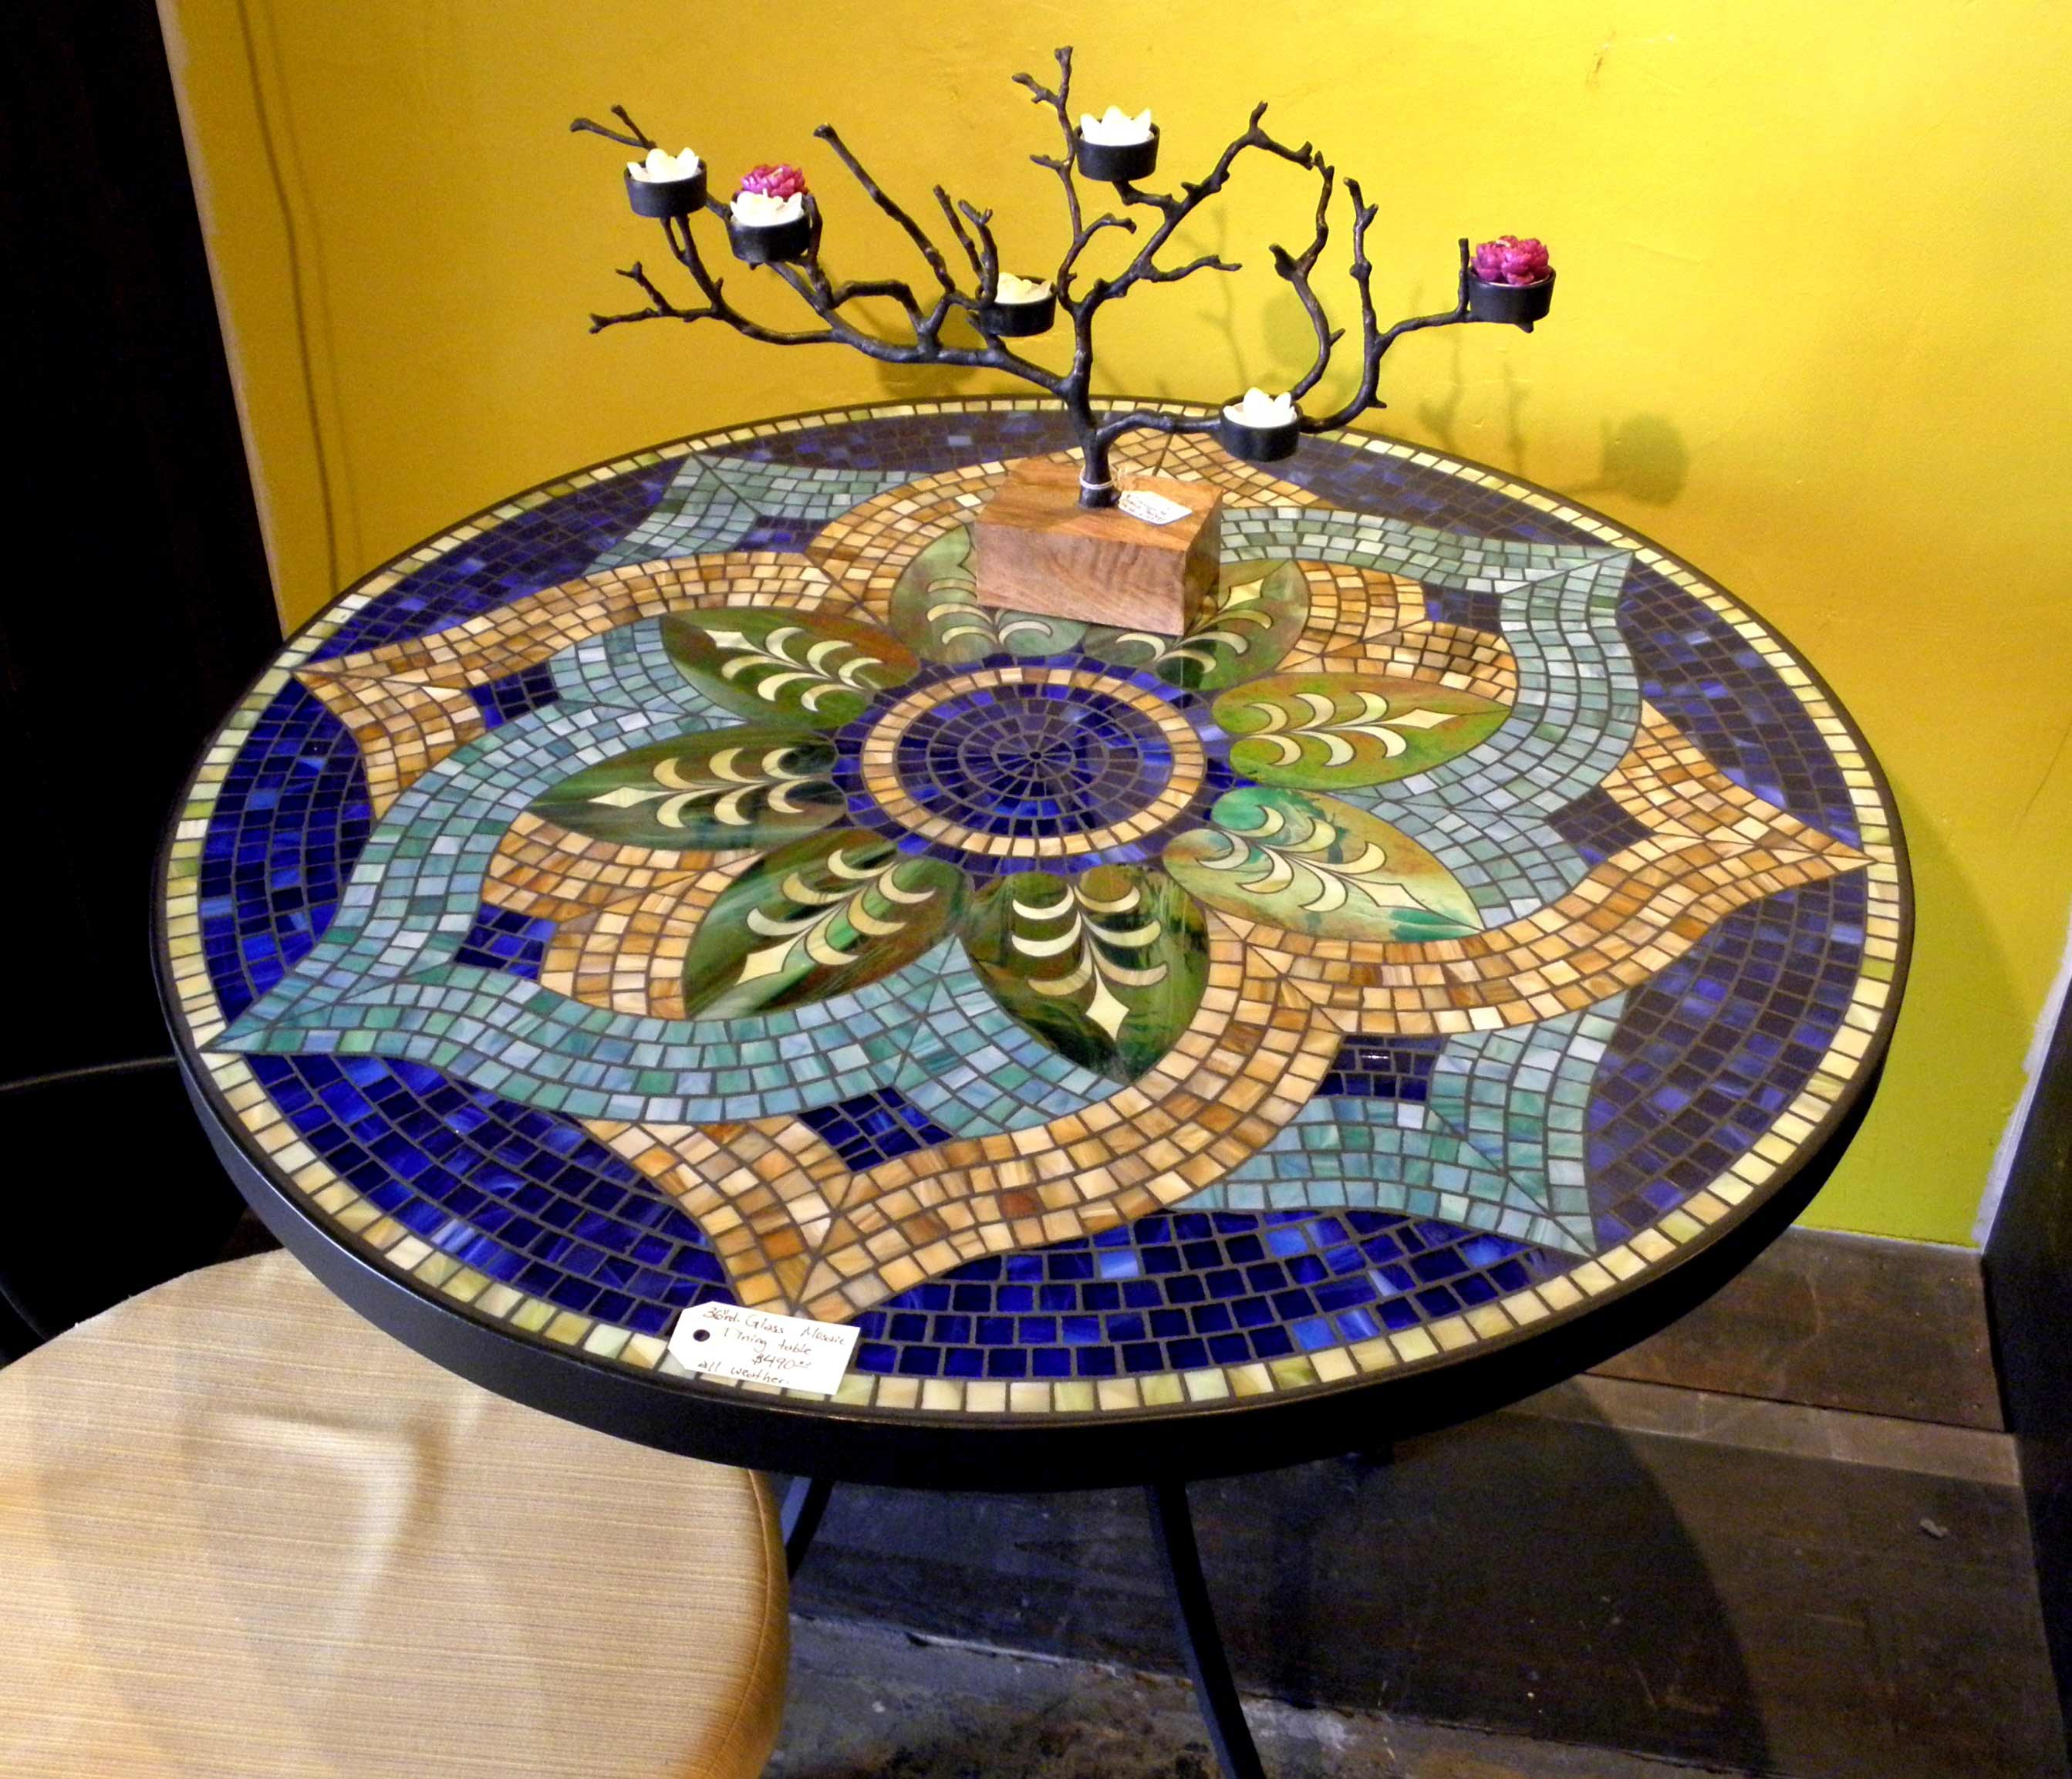 Round Mosaic Tile Patterns: MOSAIC FURNITURE & BASINS On Pinterest